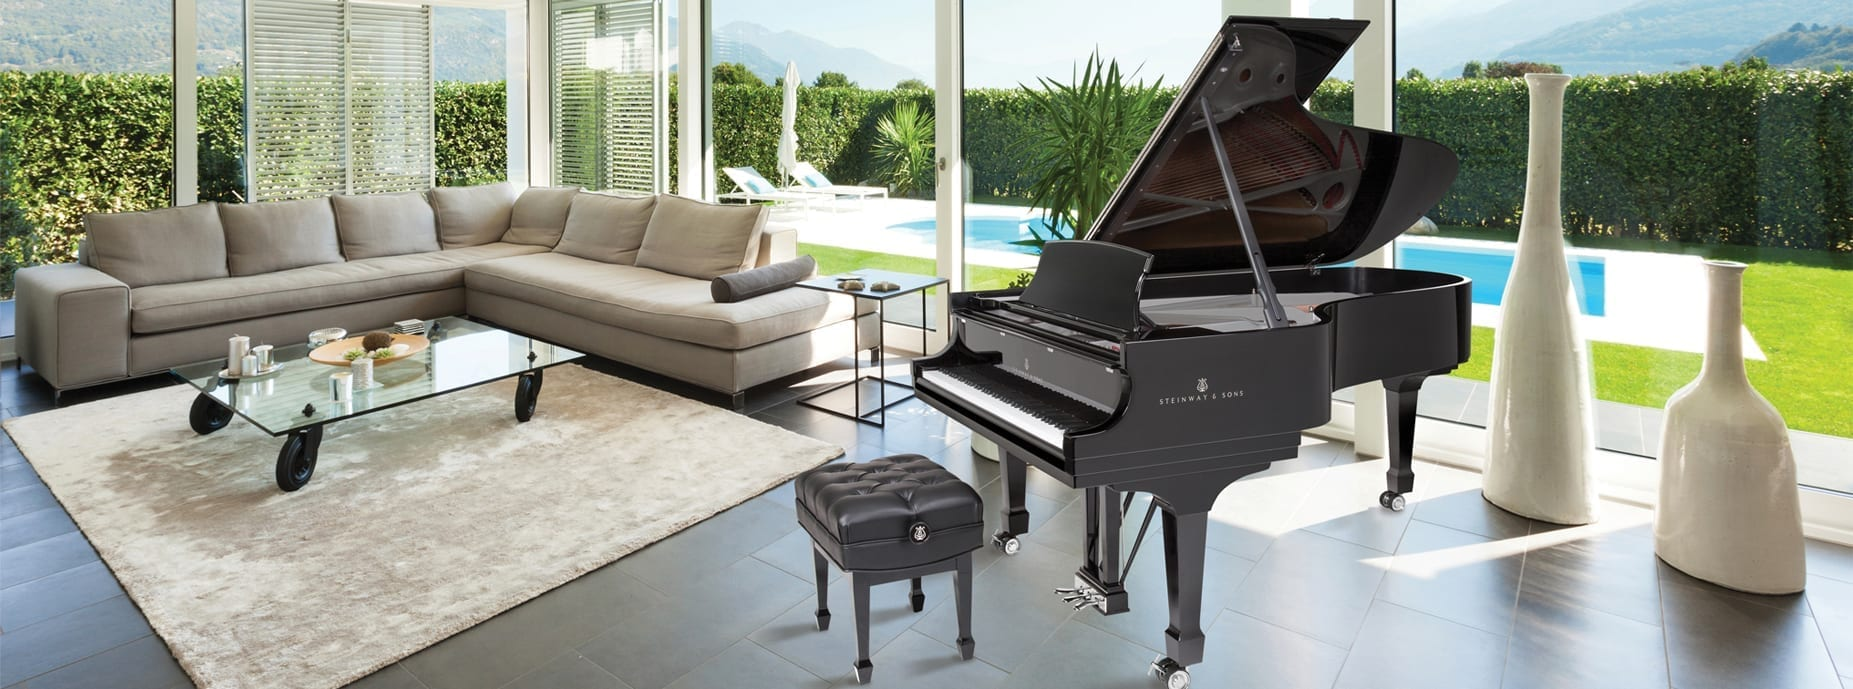 Financing Your Piano Purchase